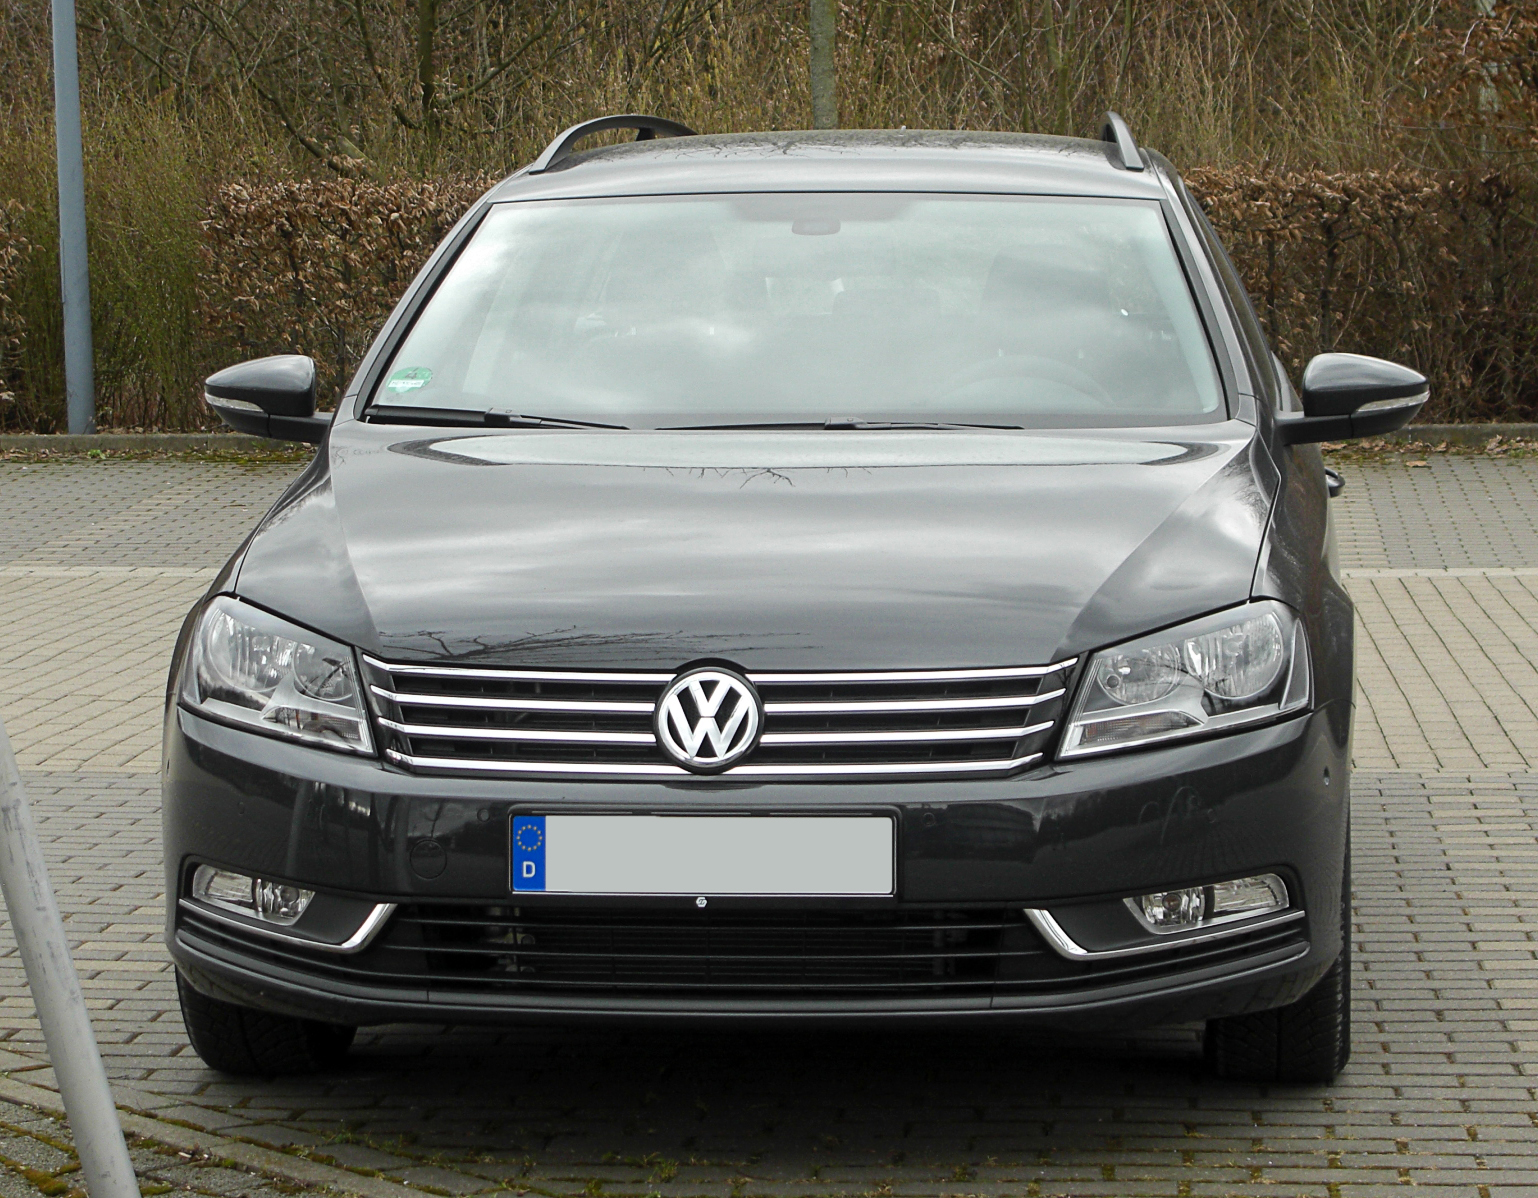 2011 volkswagen passat variant 2 0 tdi bluemotion related infomation specifications weili. Black Bedroom Furniture Sets. Home Design Ideas